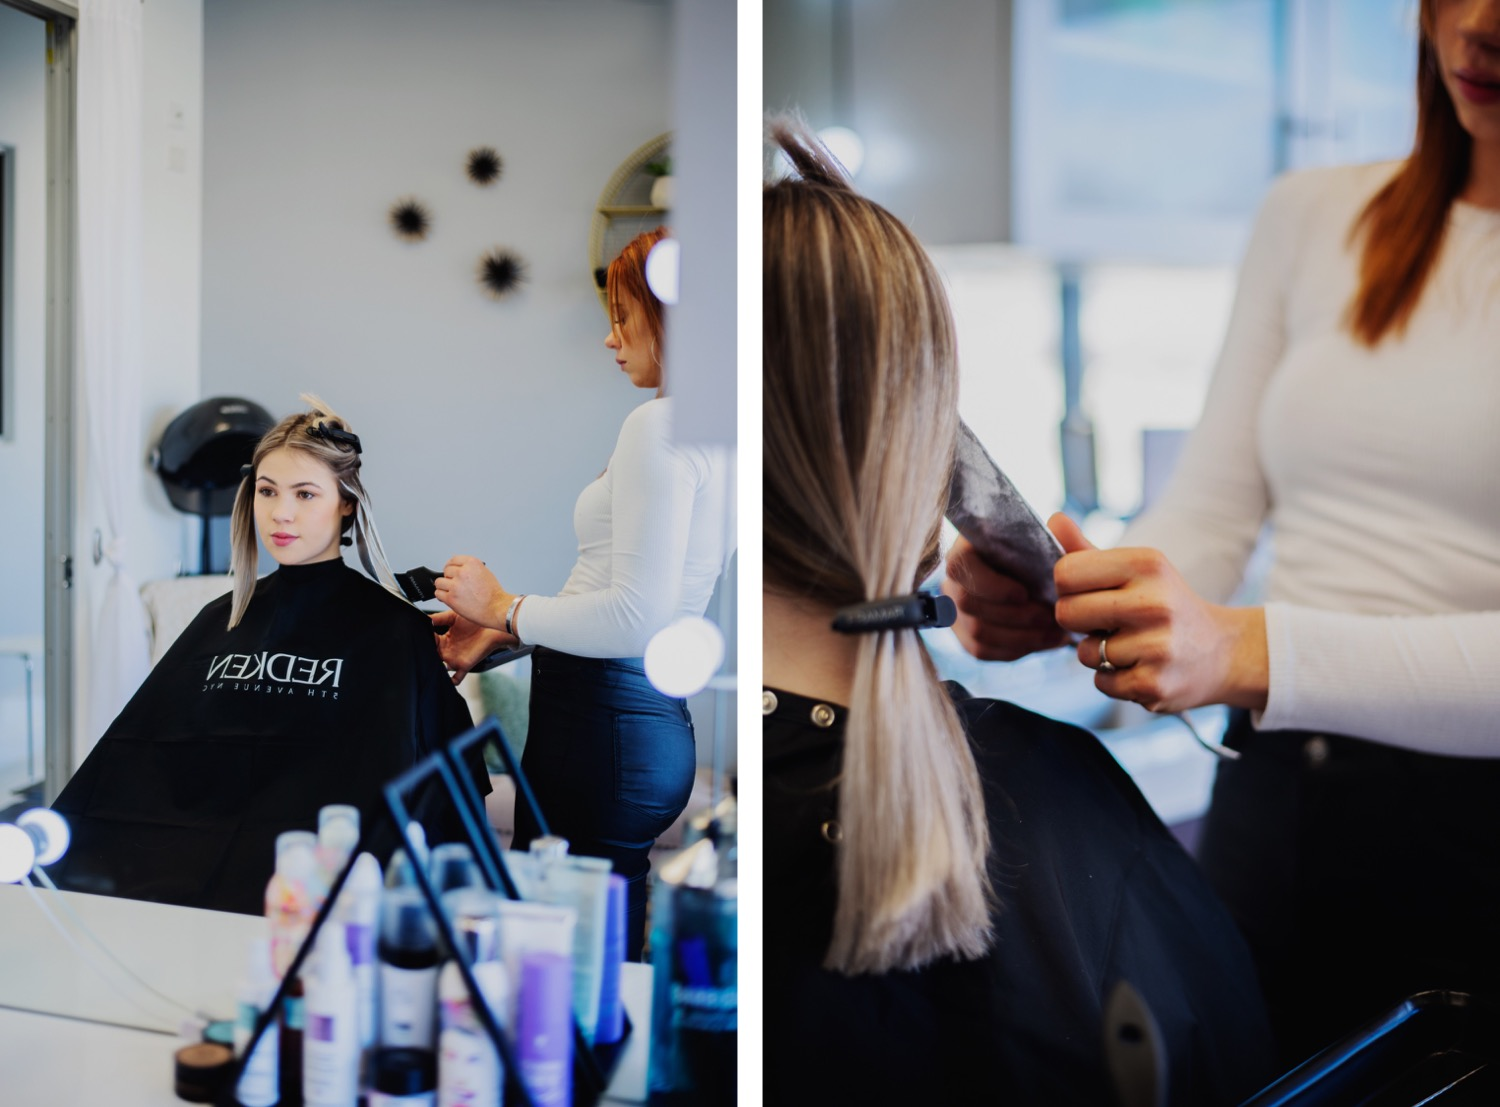 10_Laura-Salon-OakbrookTerrace_0158_Laura-Salon-OakbrookTerrace_0146_salon_oakbrookterrace_businessowner_oakbrookterracesalon_hairstylist_branding.jpg